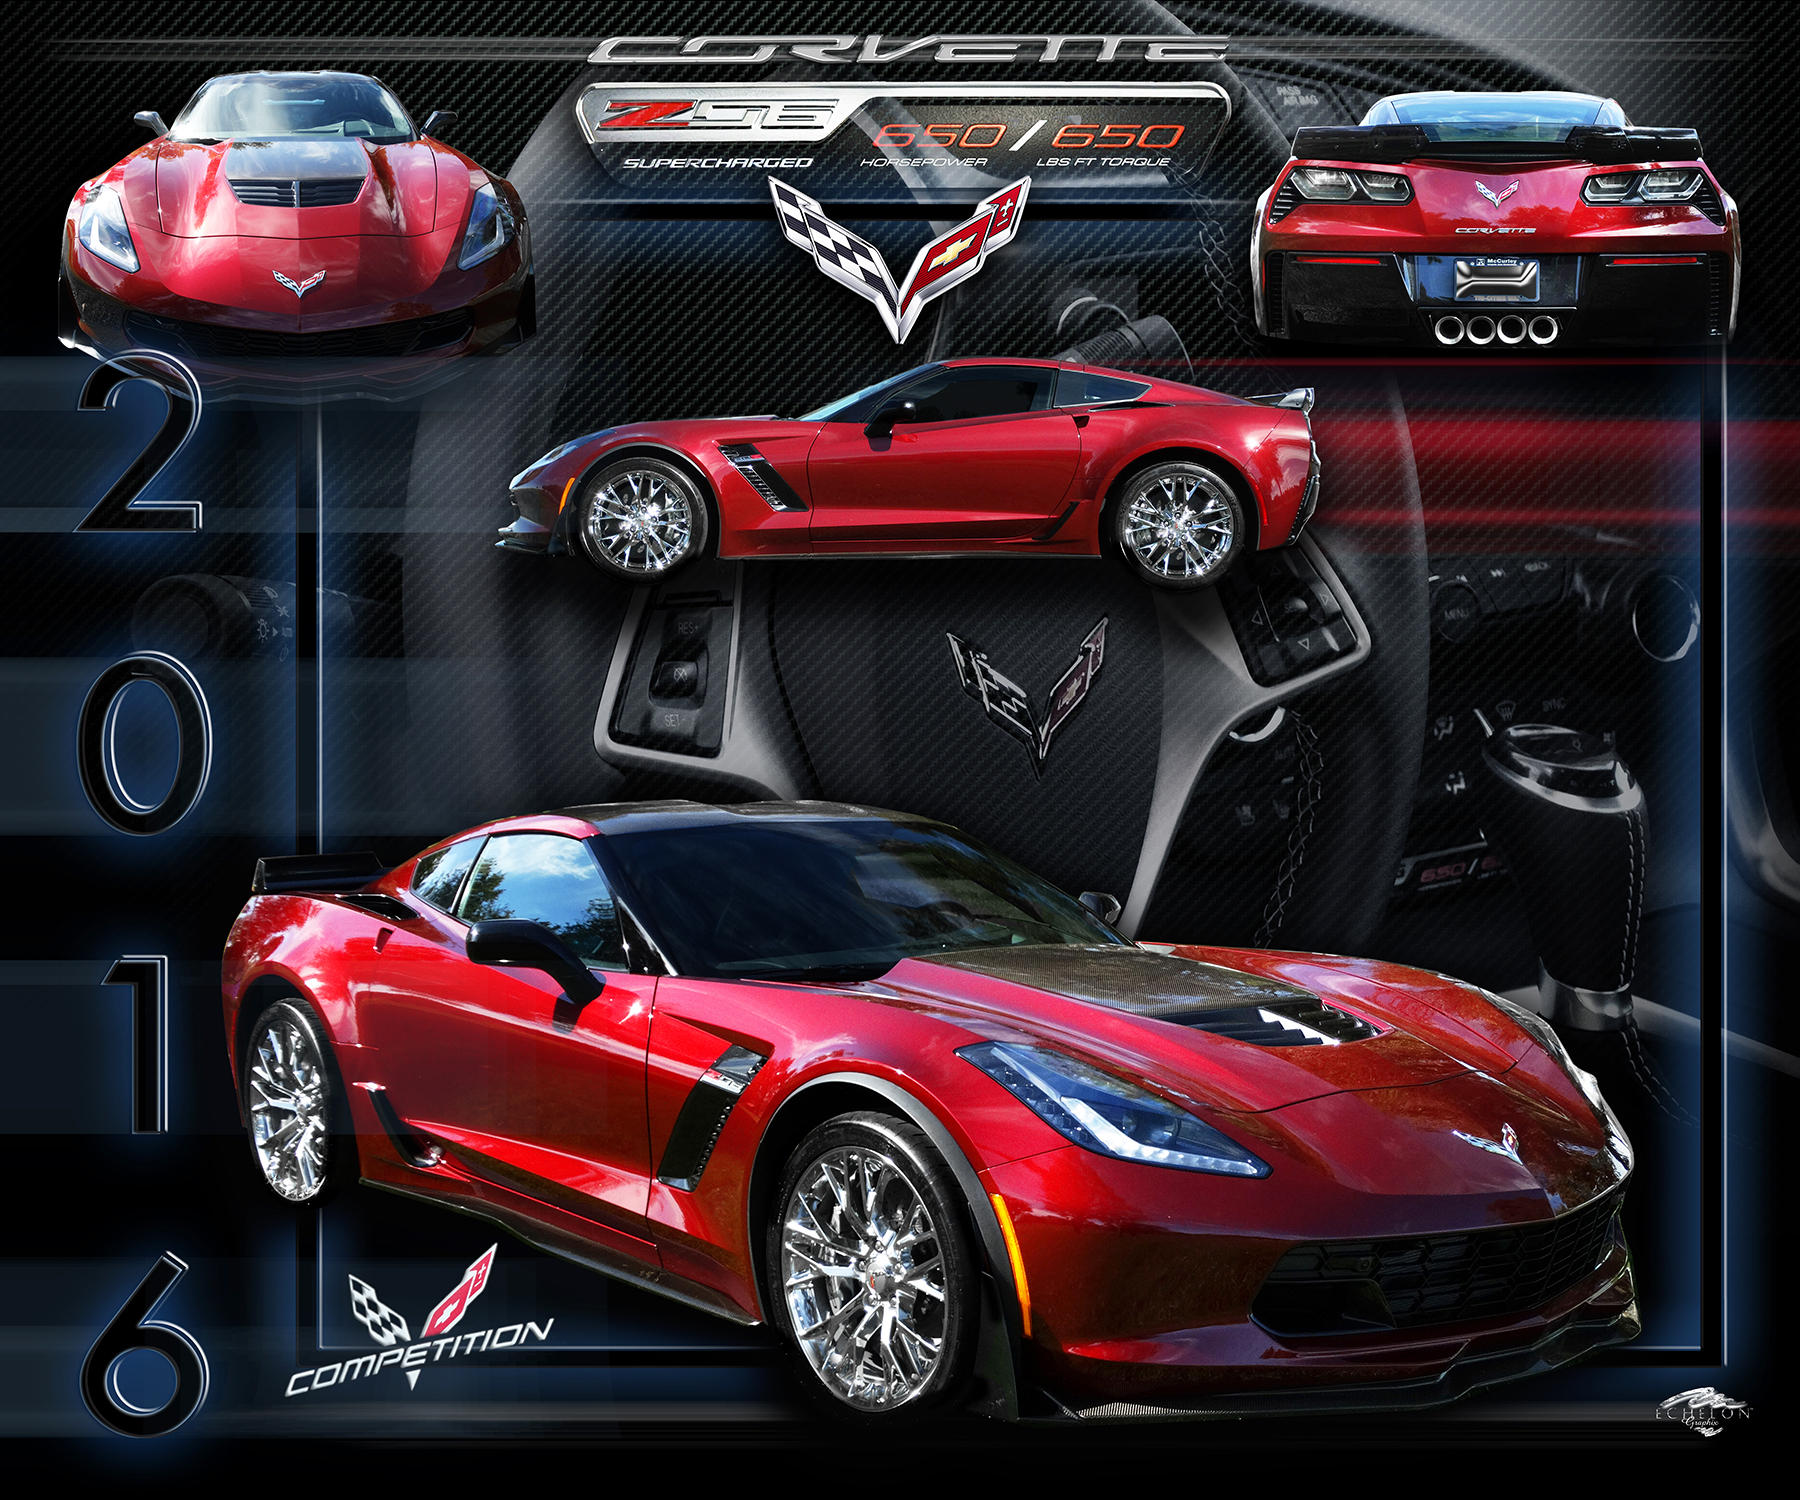 2016 Z06 Competition Montage